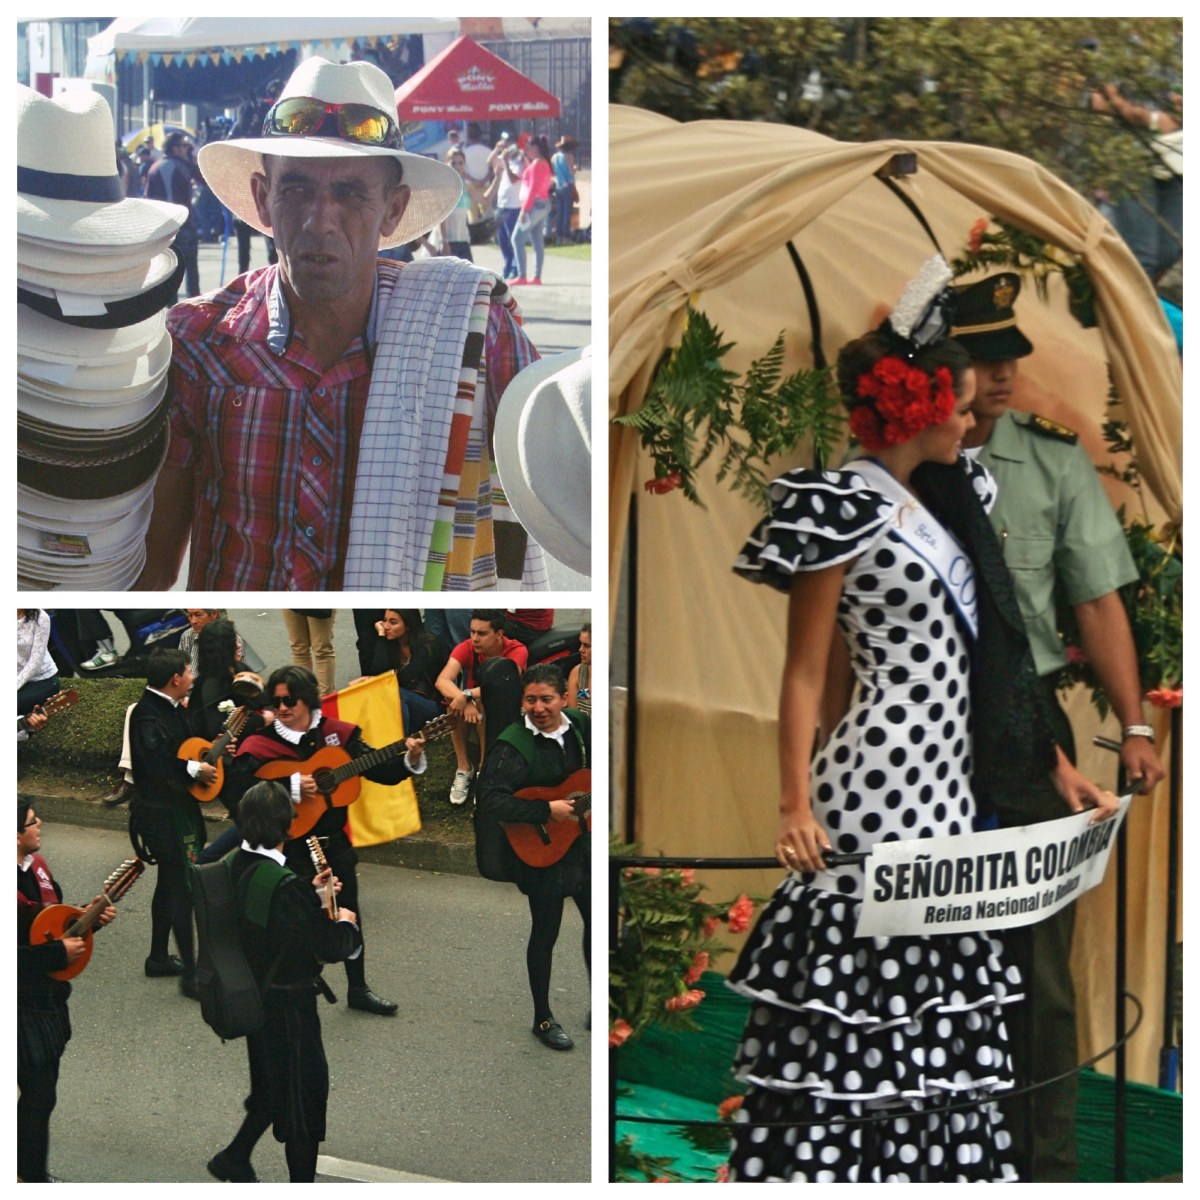 La Feria de Manizales: Joy, Culture and Tradition, by guest blogger Jana DeBusk